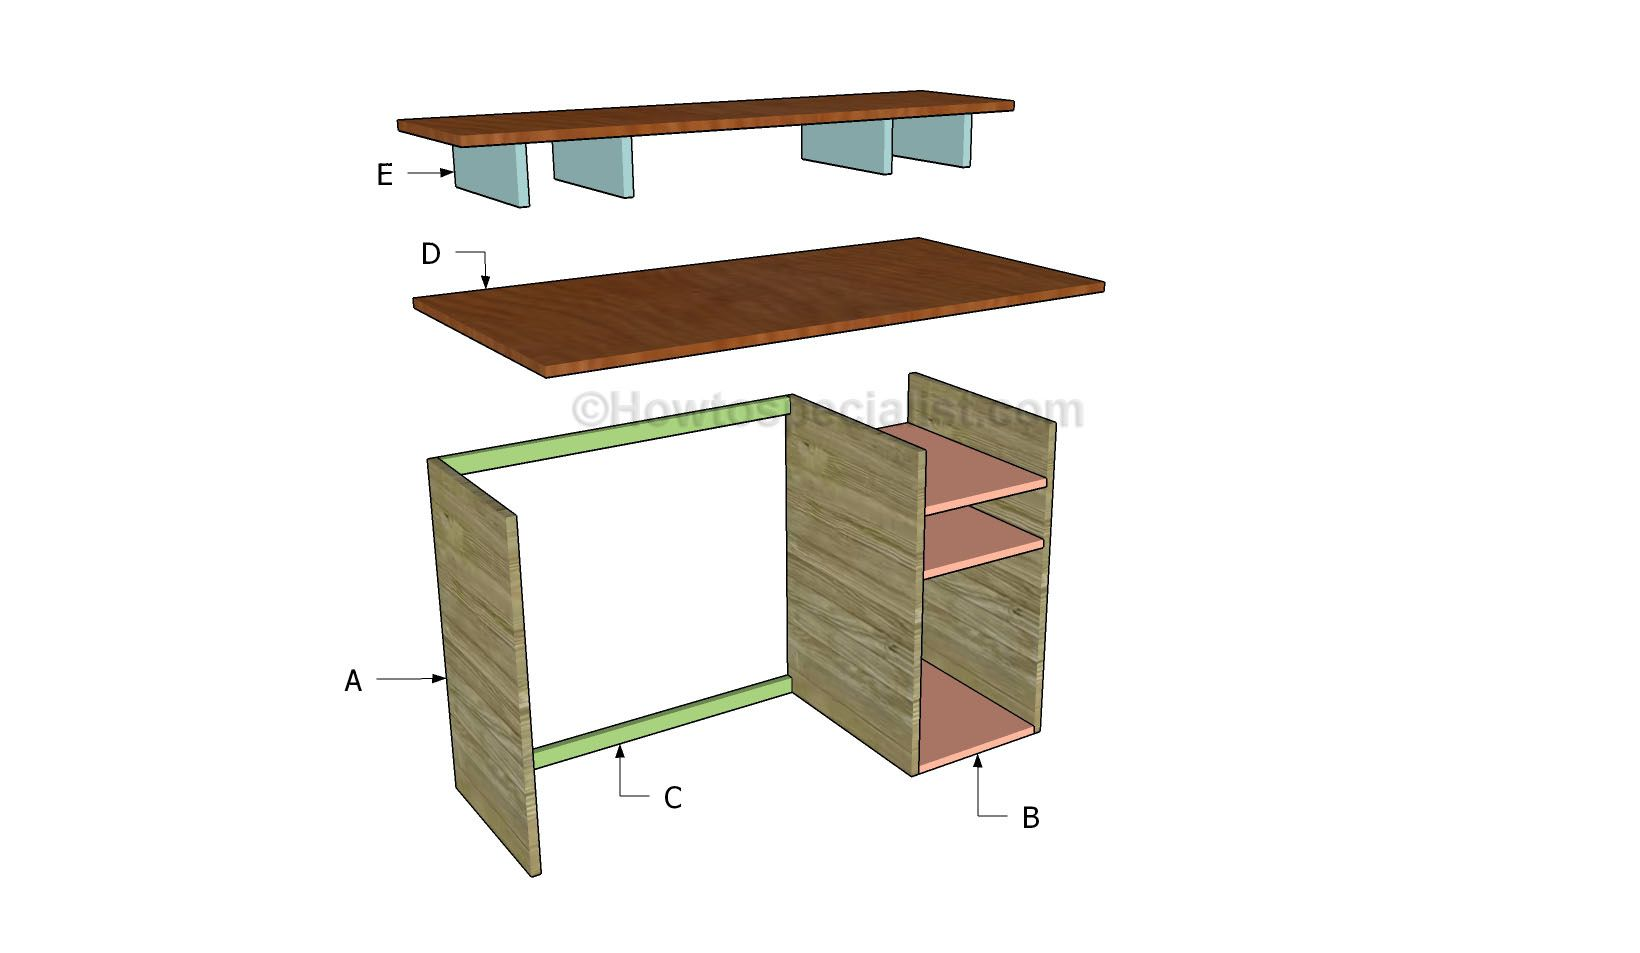 Free Computer Desk Plans Howtospecialist How To Build Step By Step Diy Plans Computer Desk Plans Woodworking Desk Woodworking Desk Plans